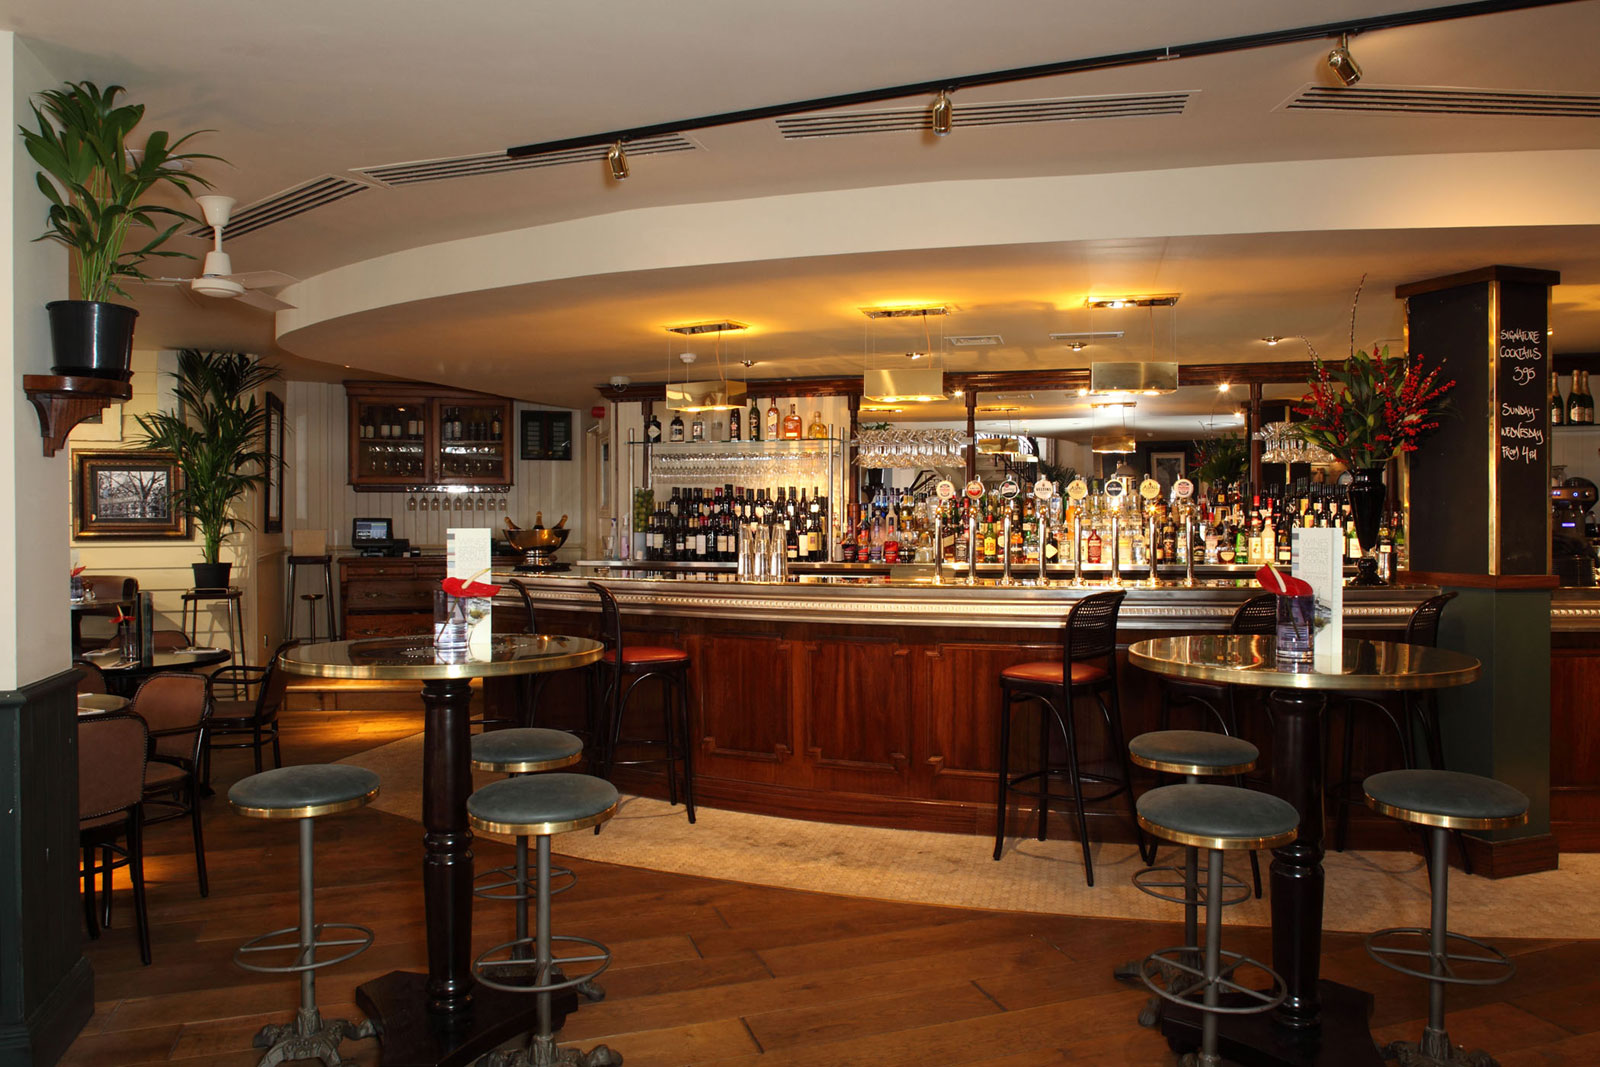 Reserve a table at Browns Bar and Brasserie - Reading